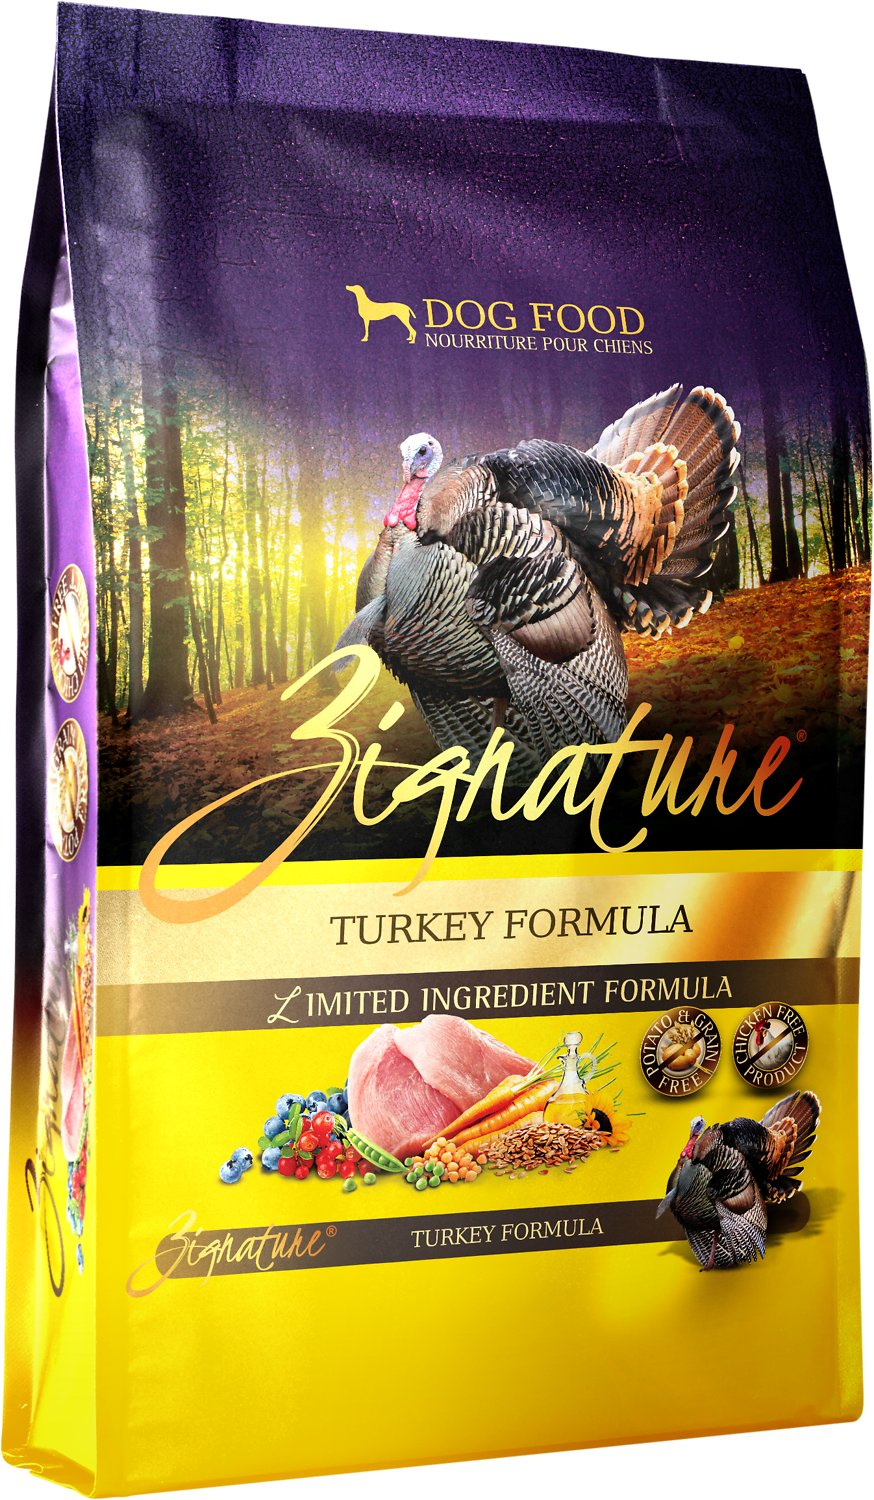 Zignature Turkey Limited Ingredient Formula Grain-Free Dry Dog Food Image